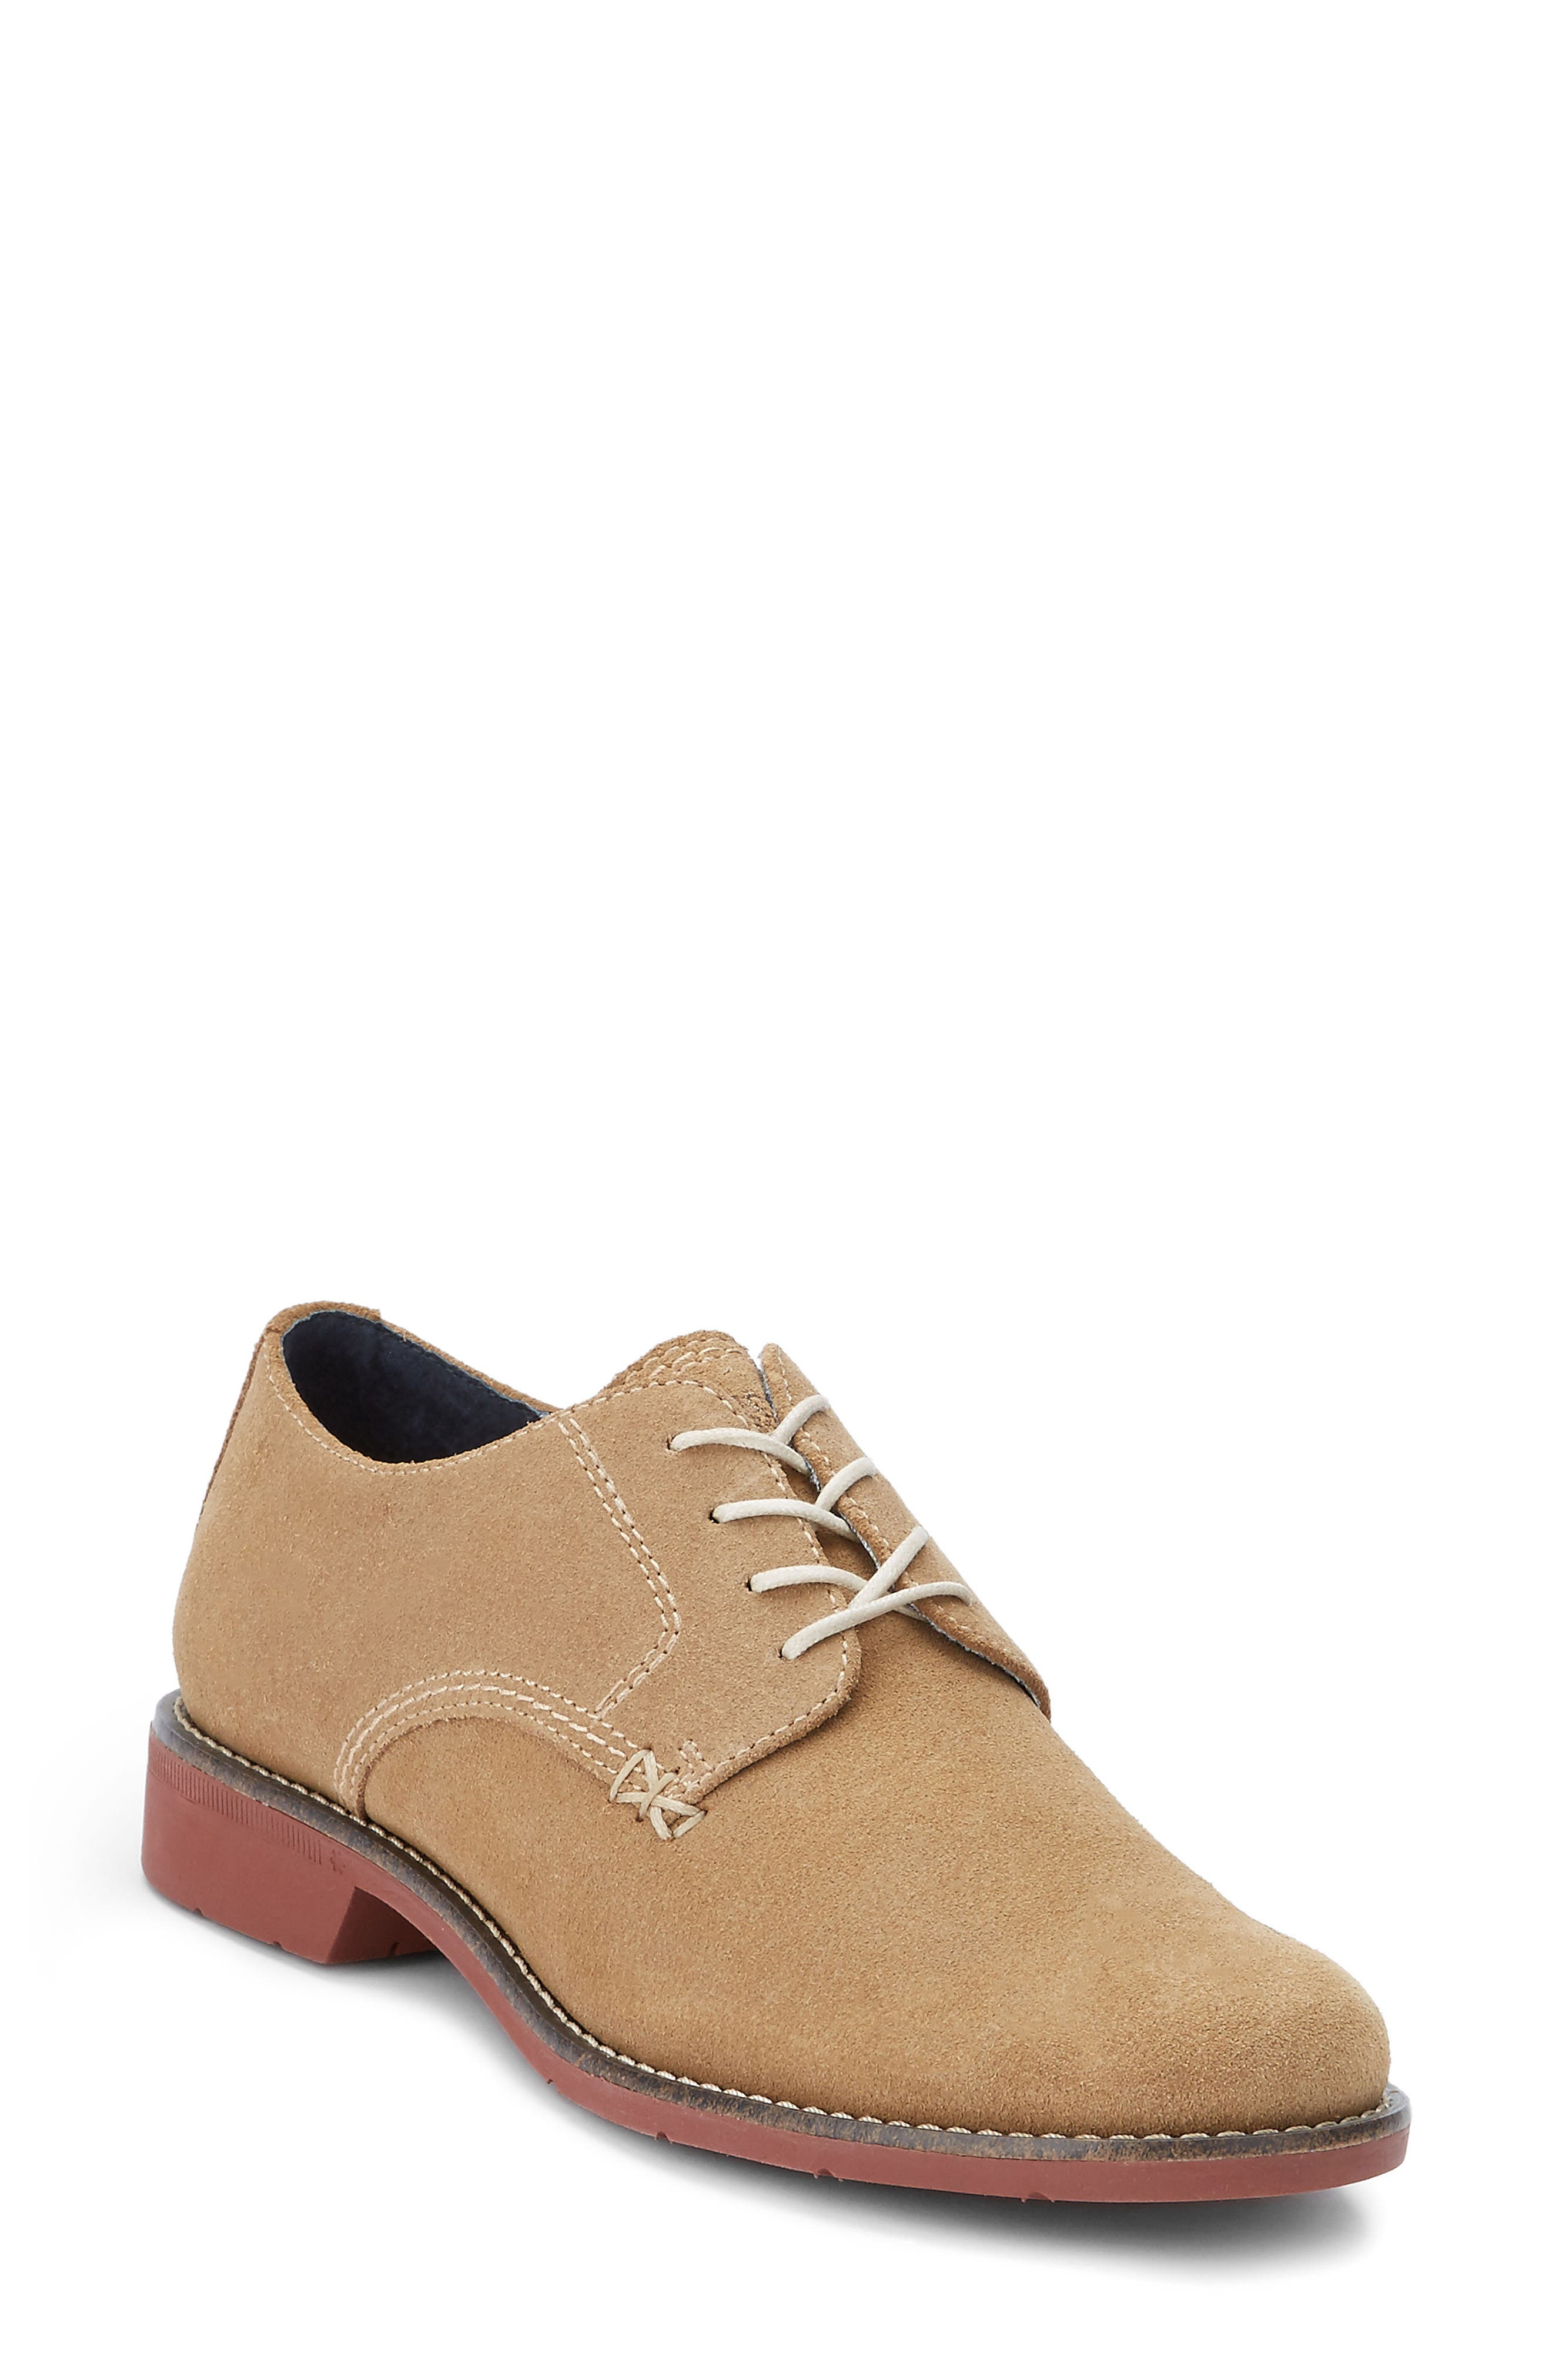 G.H. Bass and Co. Denice Lace Up Oxford (Women)